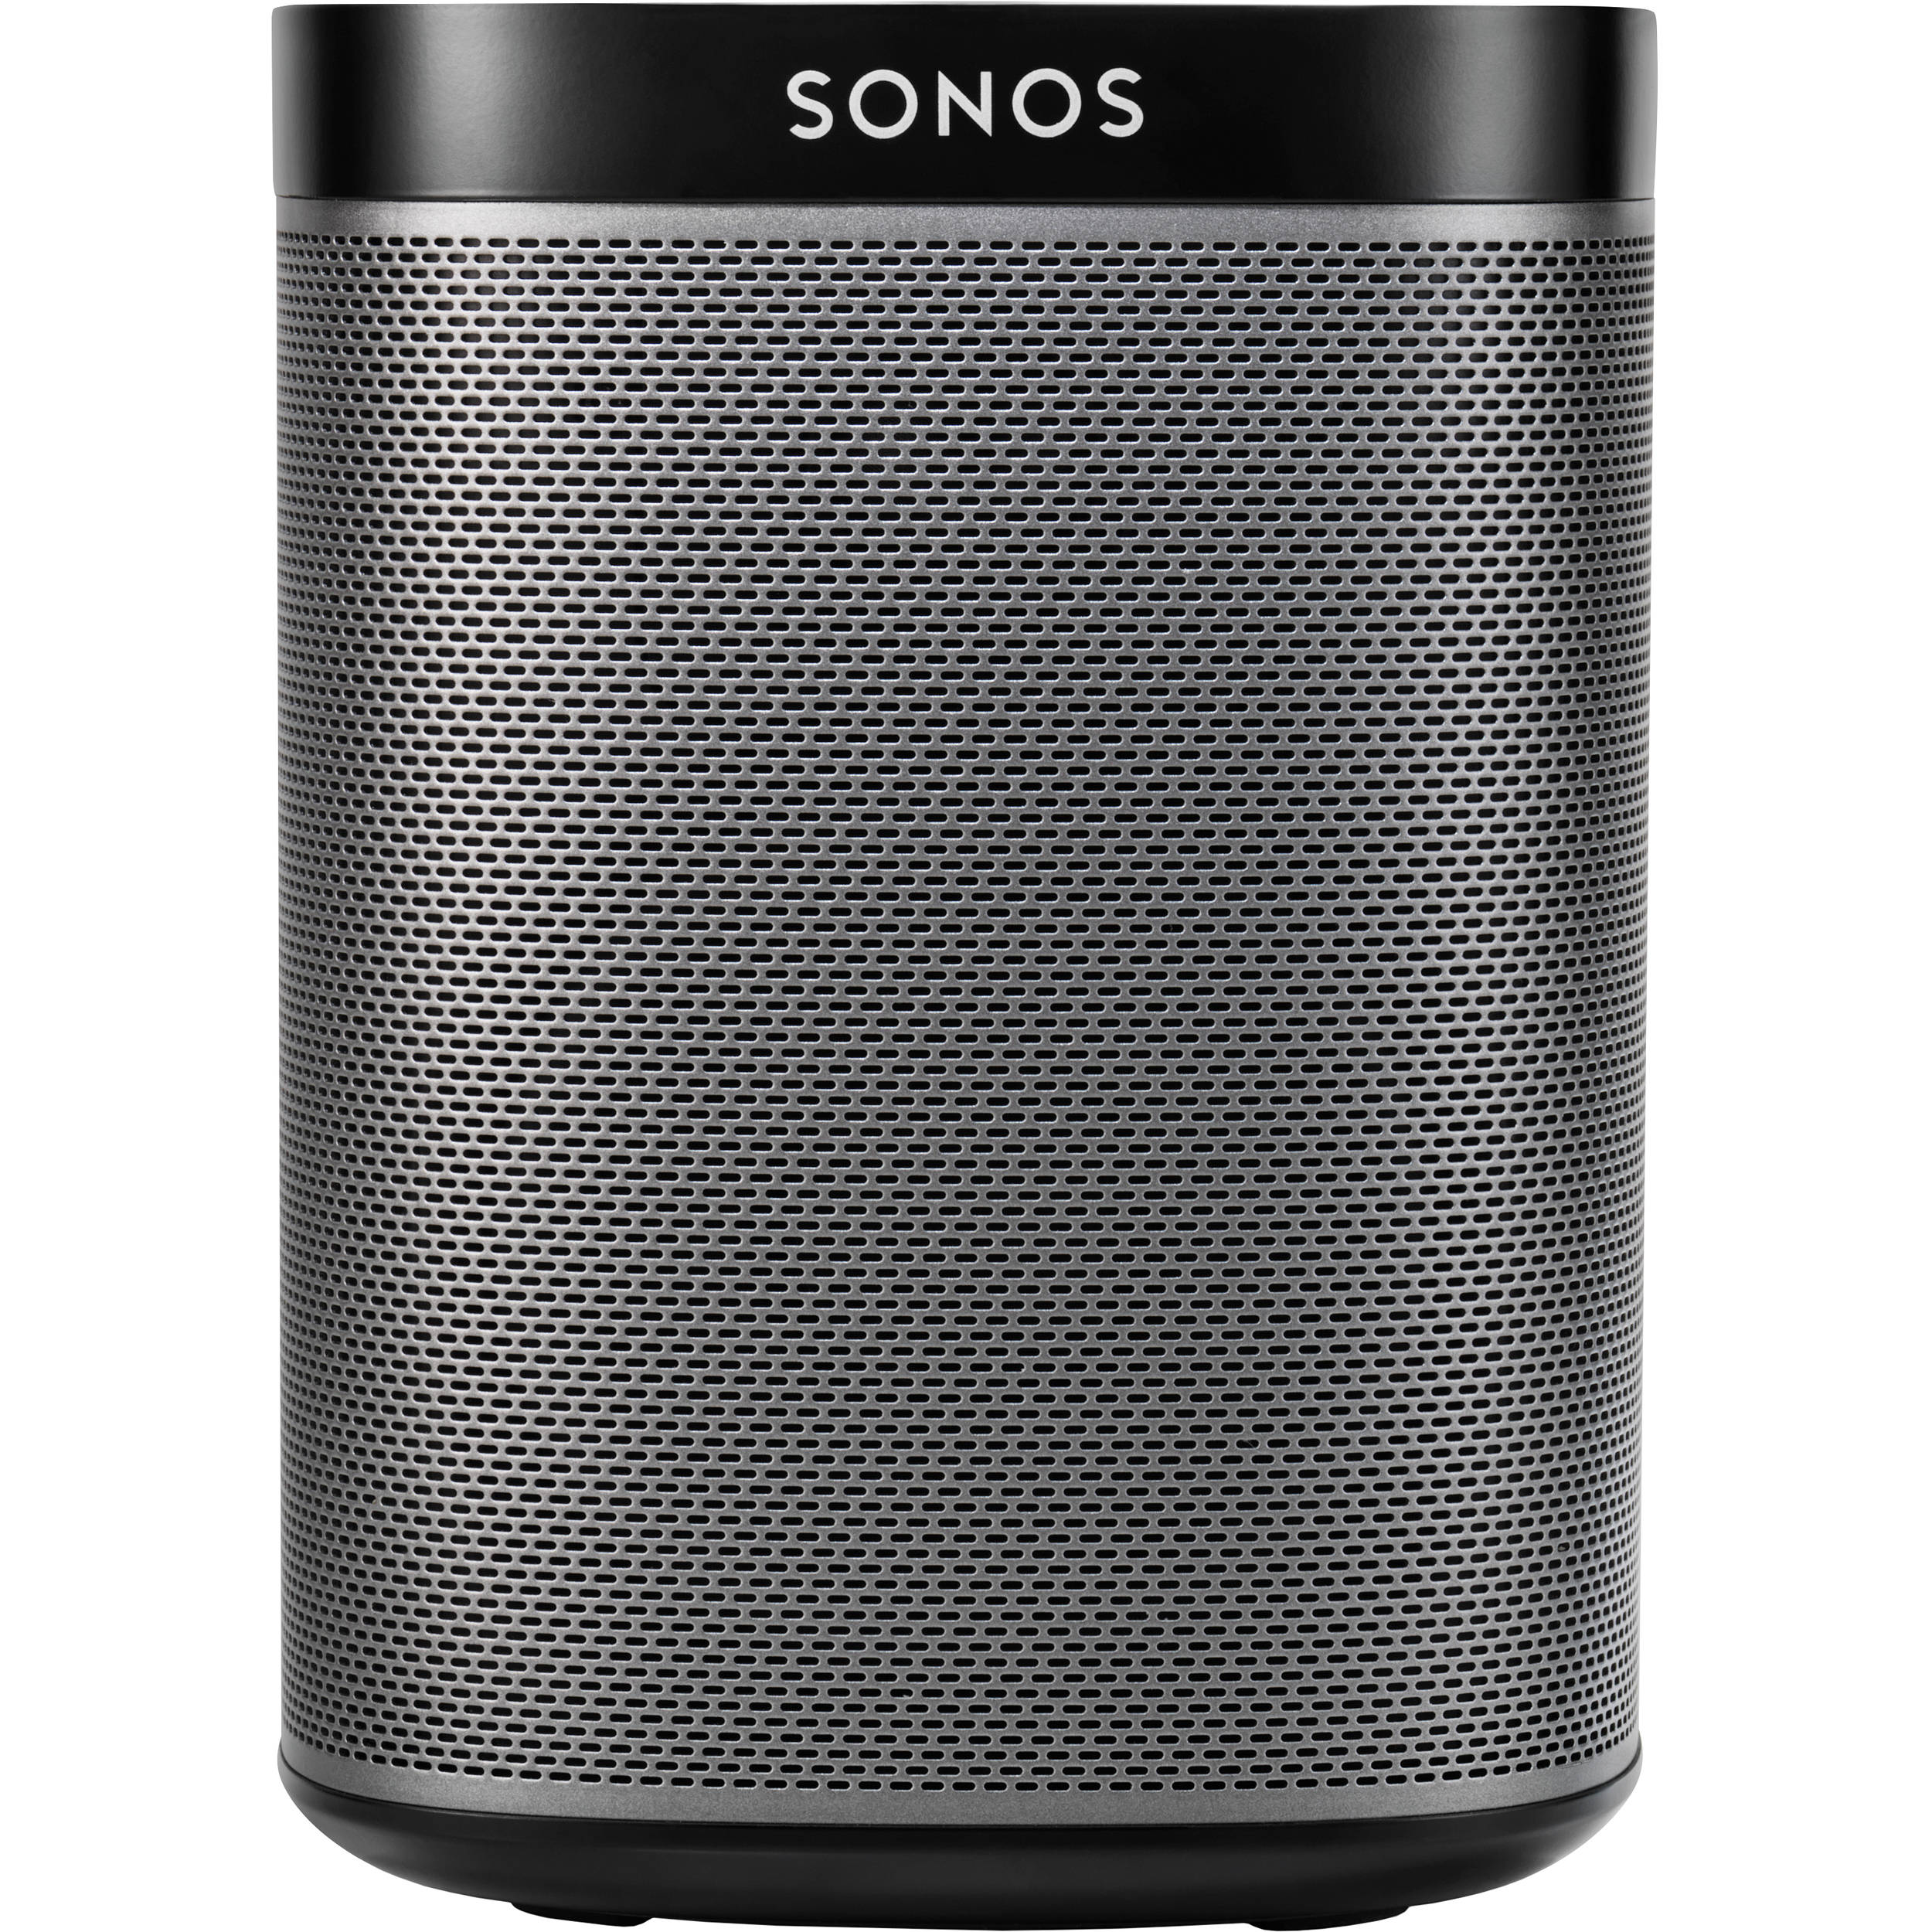 sonos play 1 compact wireless speaker black play1 b b h. Black Bedroom Furniture Sets. Home Design Ideas